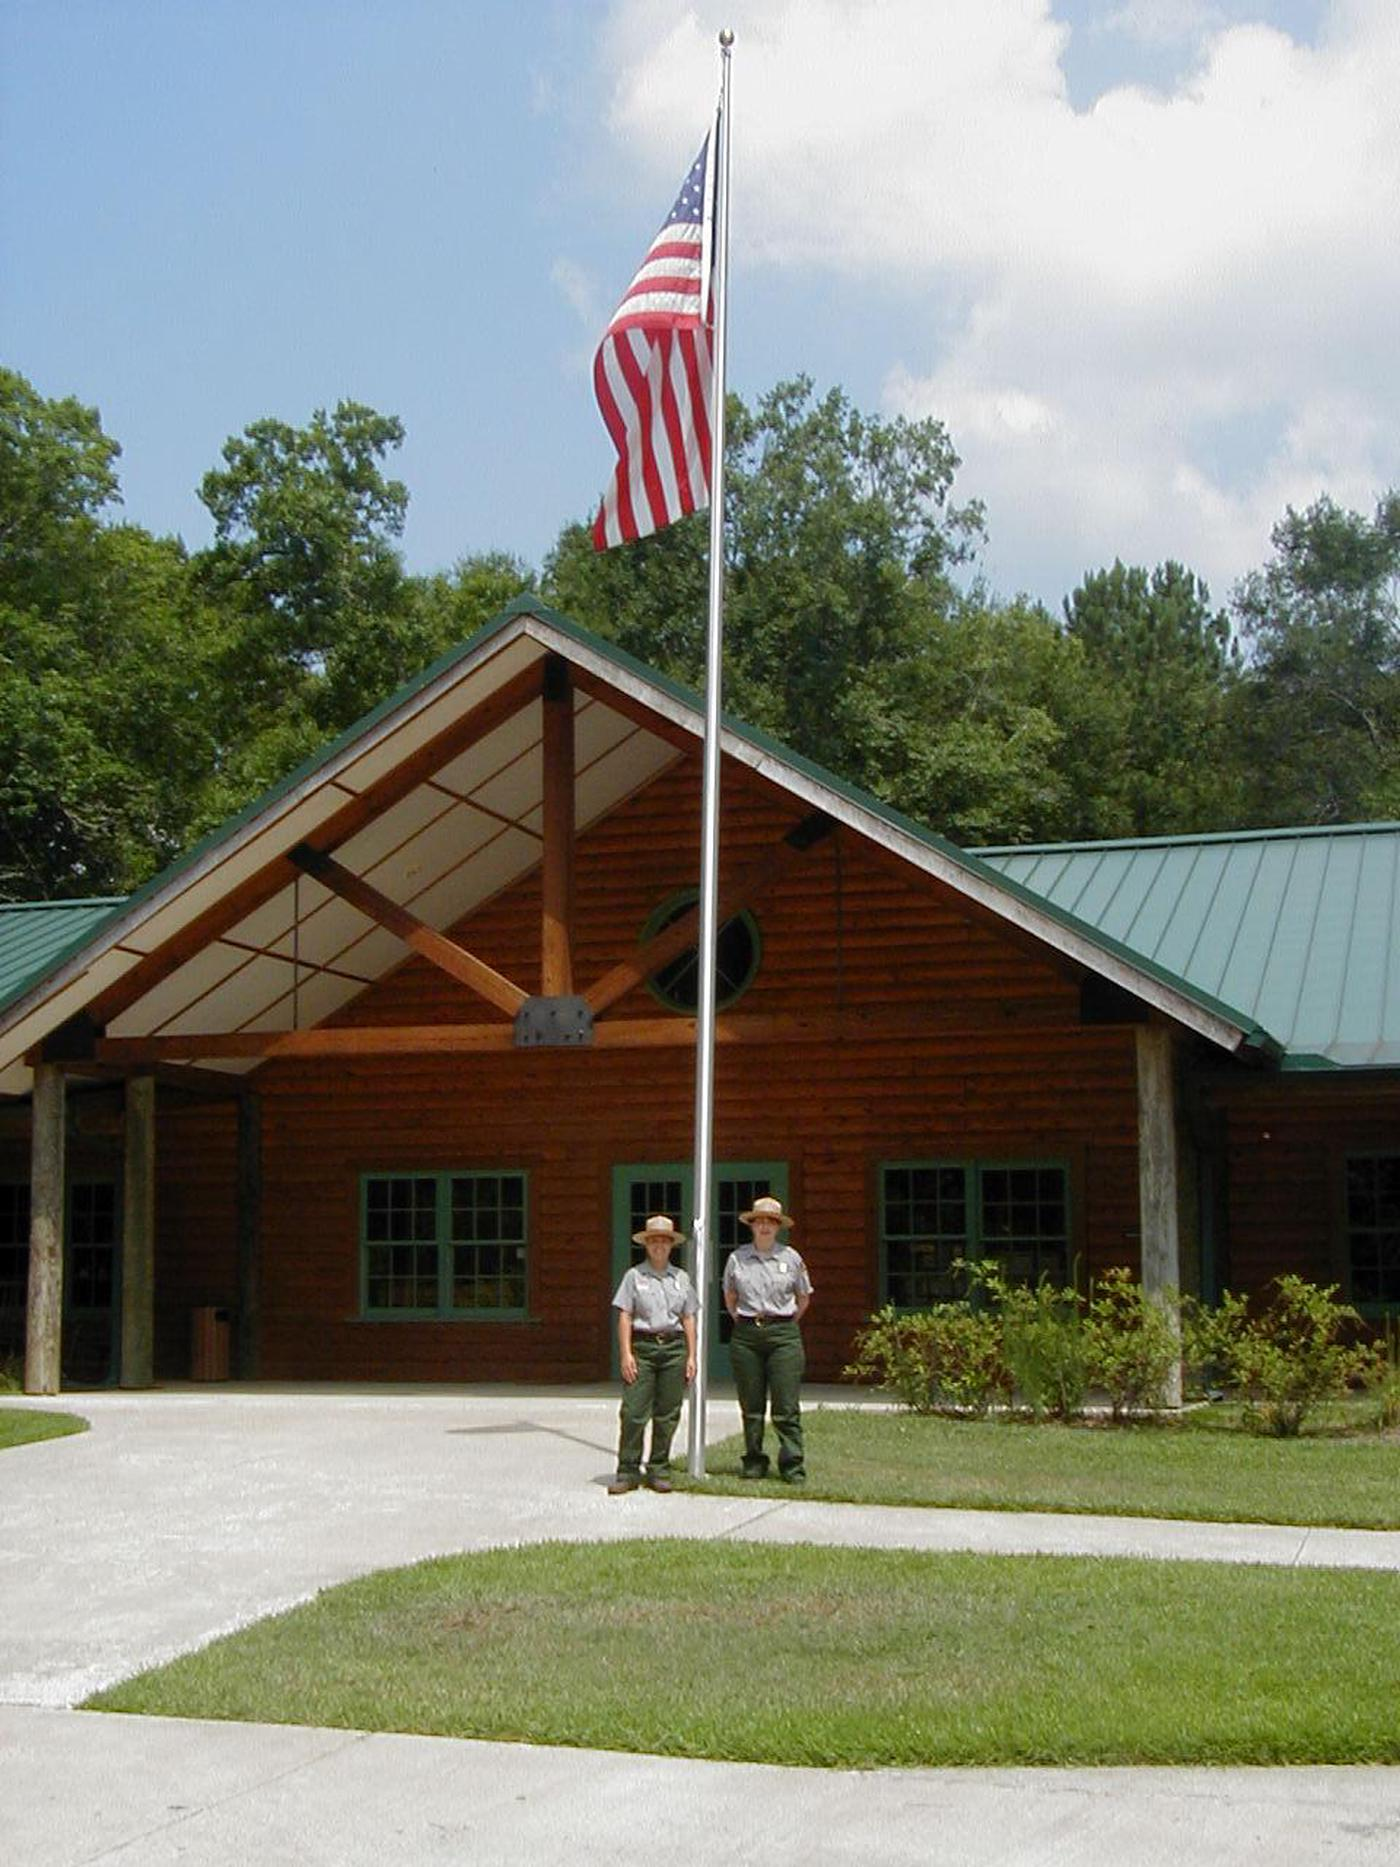 Rangers in front of visitor centerThe visitor center is open daily from 9 am to 5 pm.